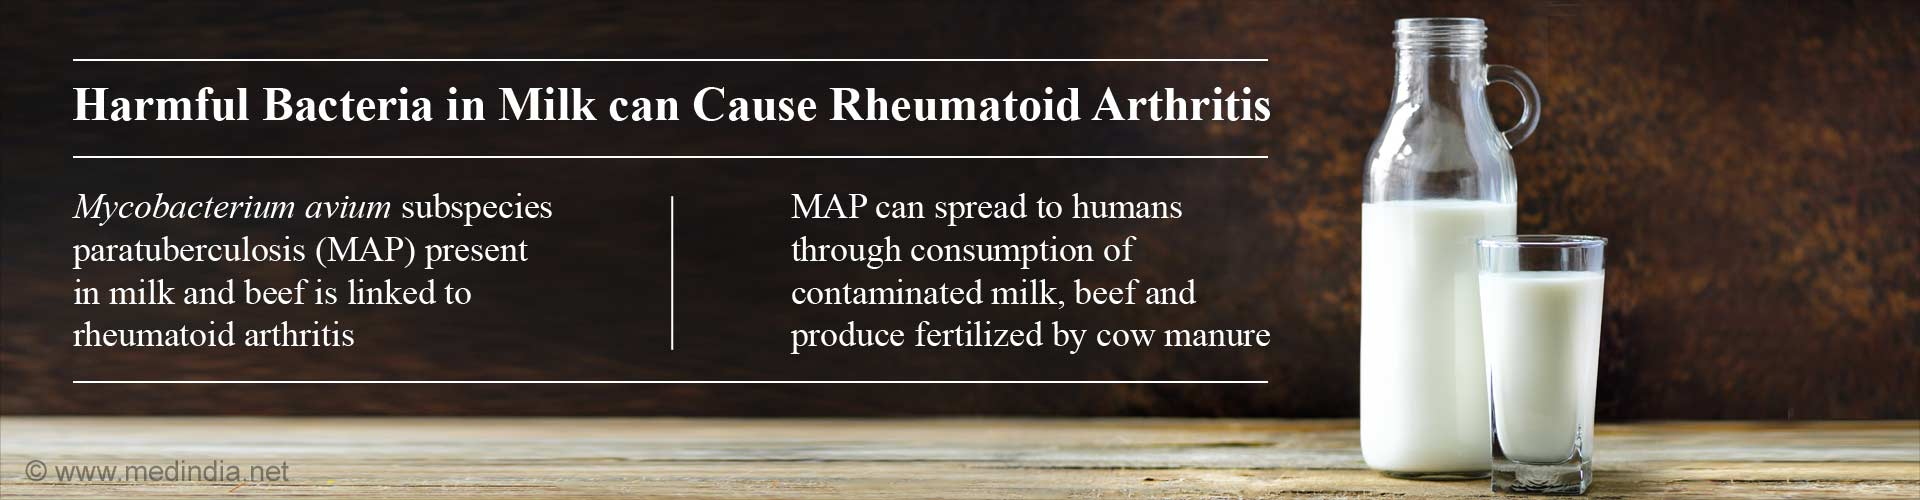 harmful bacteria in milk can cause rheumatoid arthritis